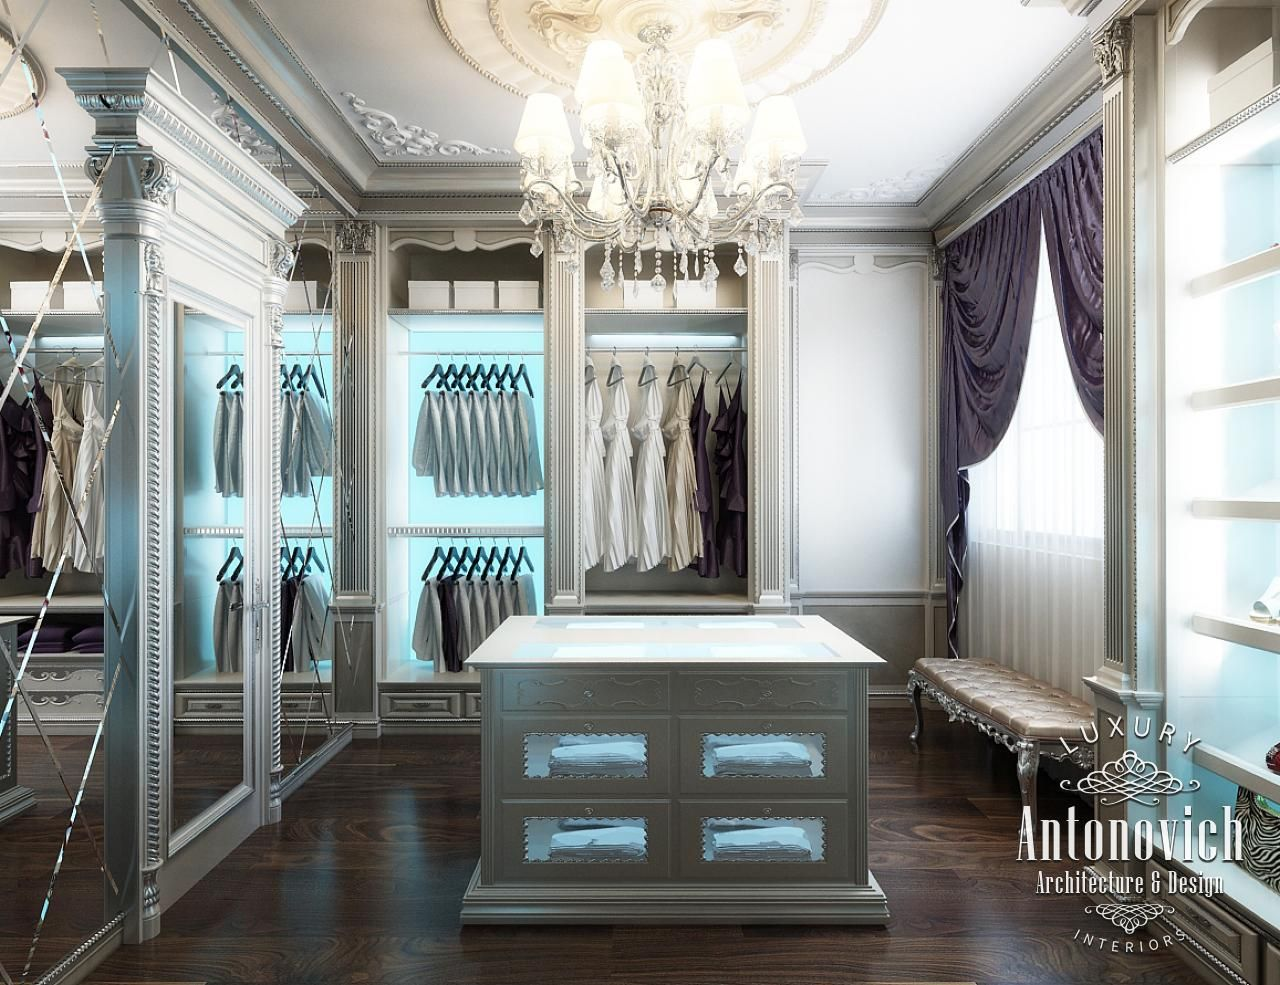 Closet villa interior design in dubai arabian ranches 2 for Villa interior design dubai